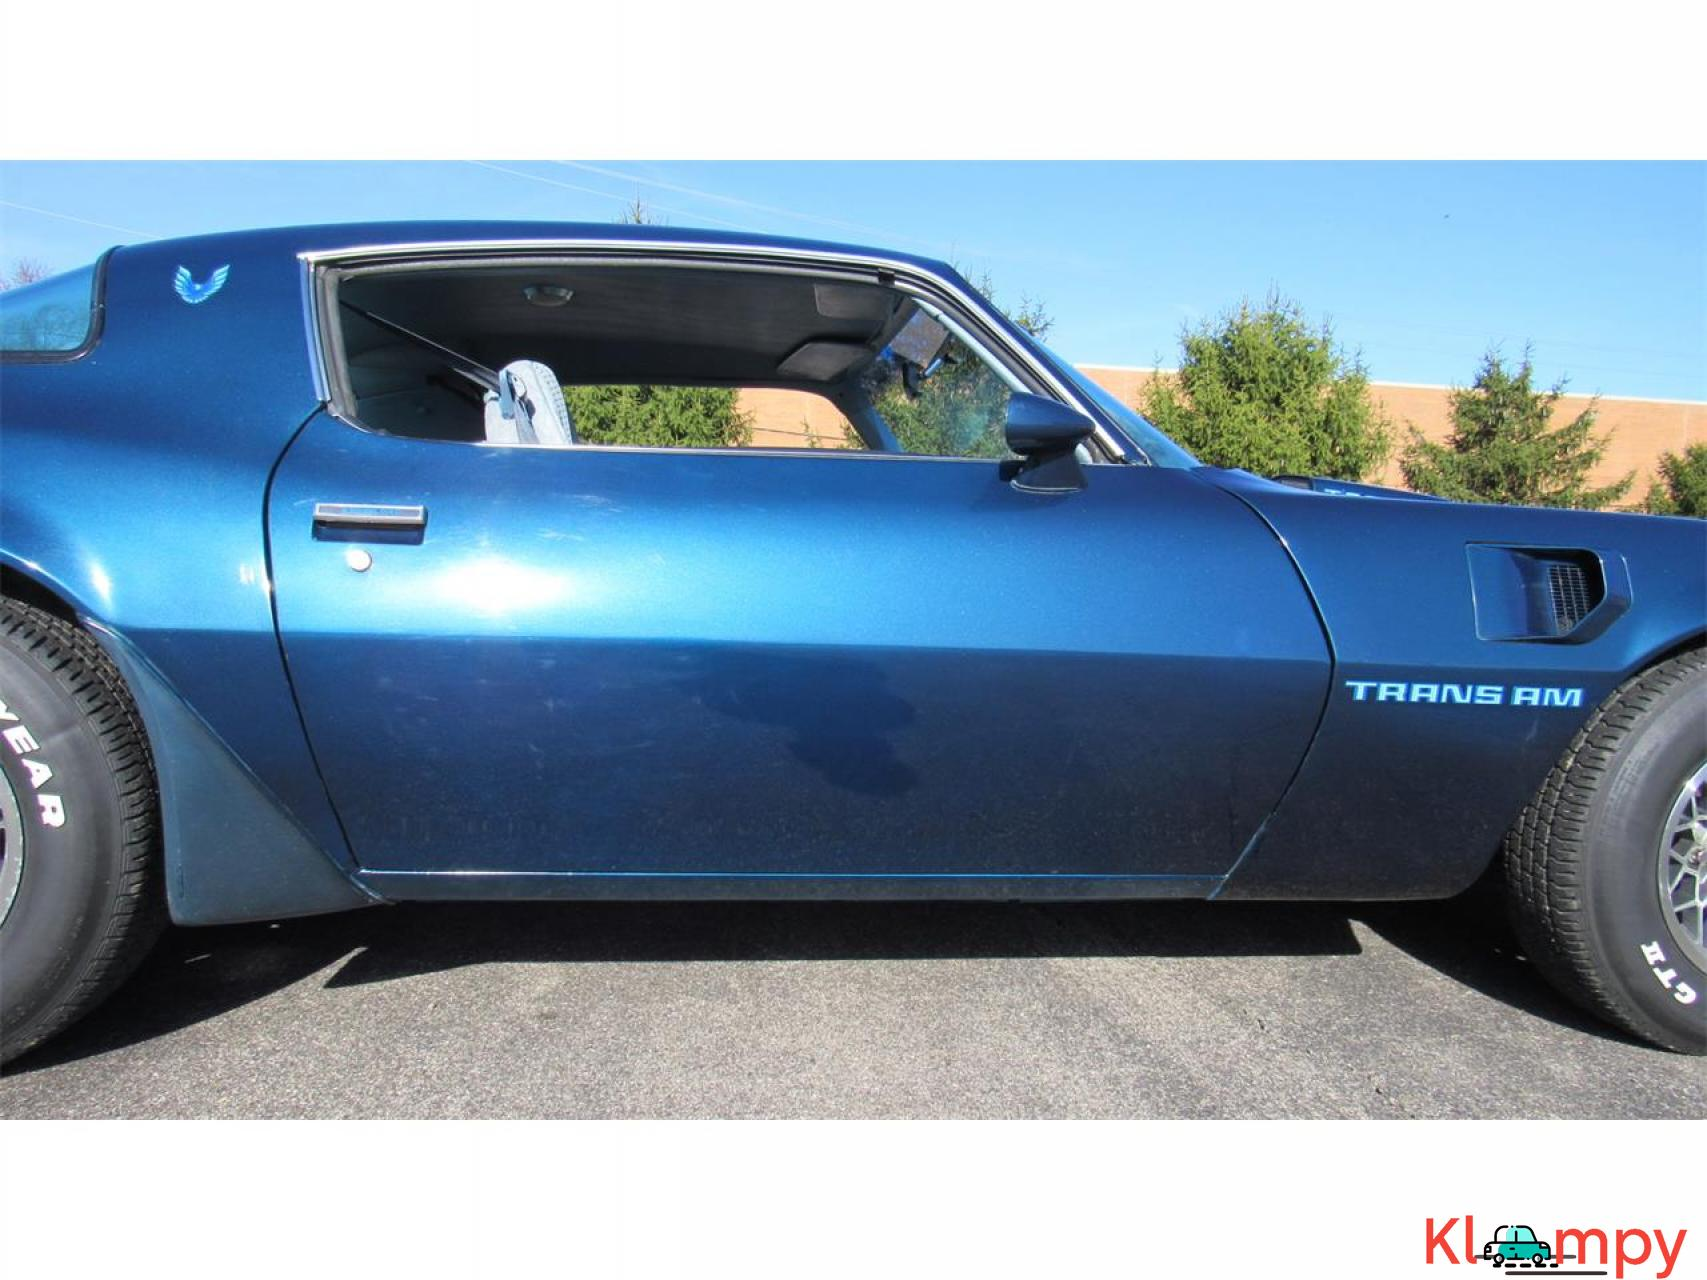 1979 Pontiac Firebird Trans Am 400 engine Original - 7/20